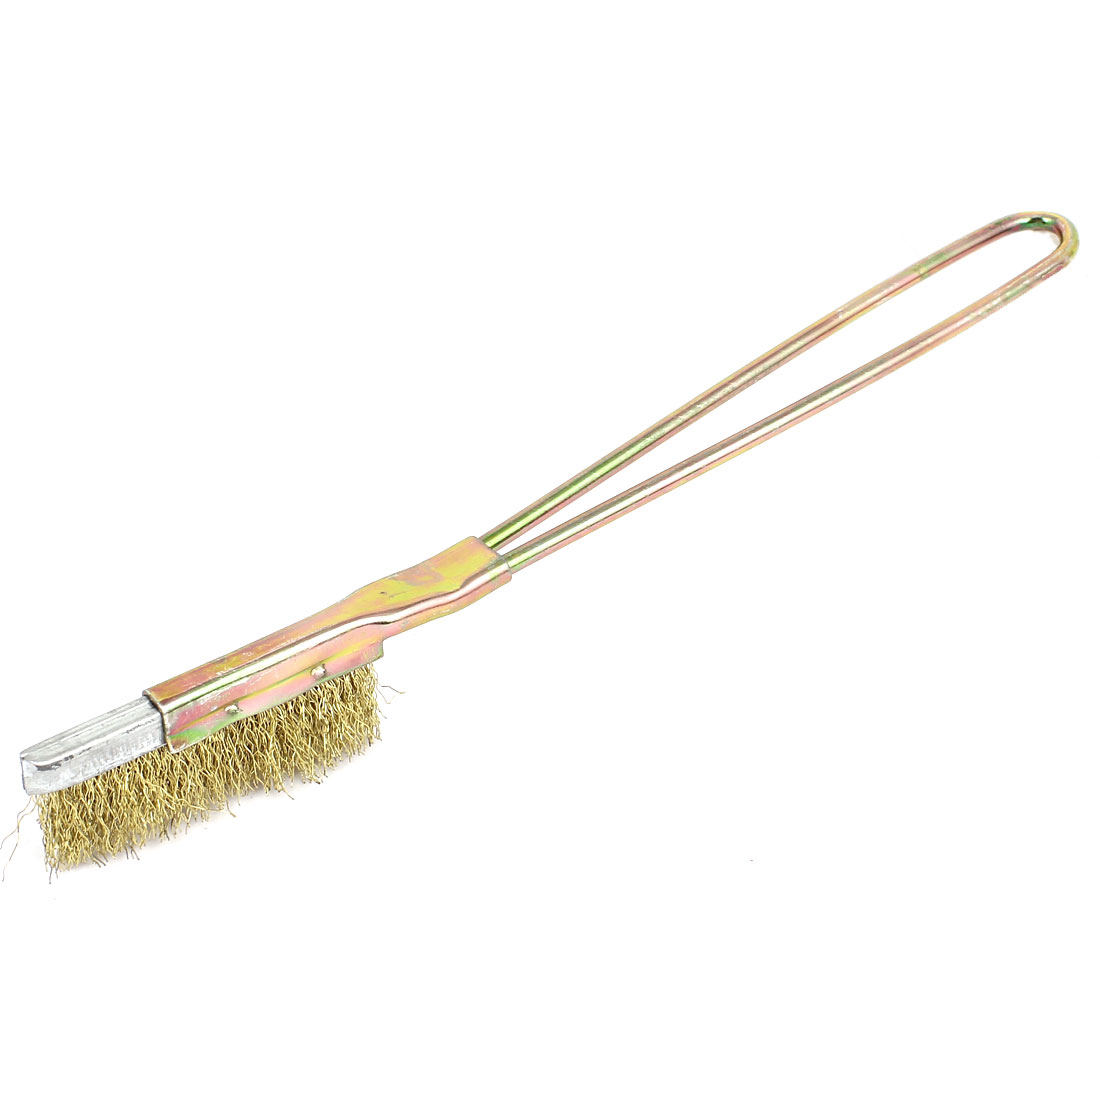 21cm Length Handy Tool Metal Handle Brass Wire Cleaning Brush Gold Tone